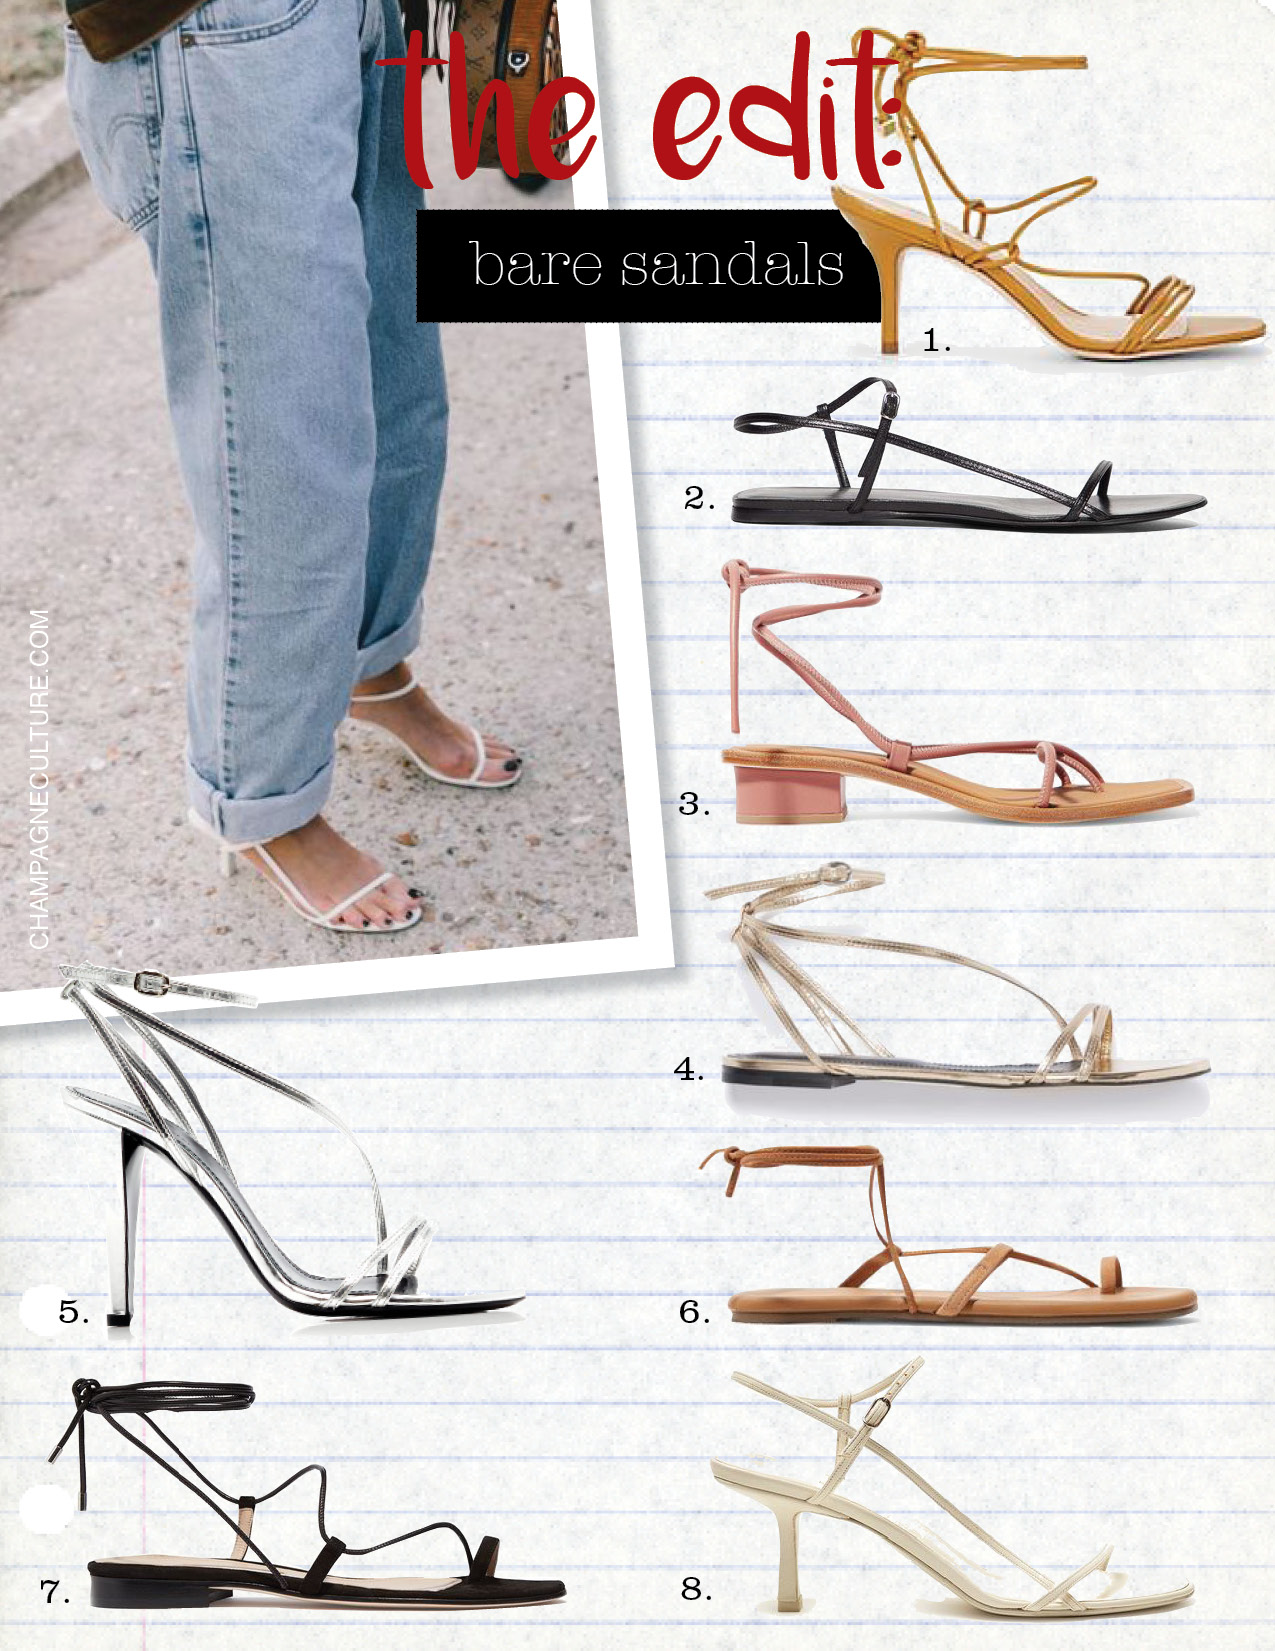 1. barneys New York selva leather sandals, $325,  barneys.com  2. the row cross-over strap leather sandals, $760,  matchesfashion.com  3. loq ara leather sandals, $350,  net-a-porter.com  4. Isabel Marant aldis sandals, $550,  isabelmarant.com  5. Isabel Marant arora leather sandals, $505,  modaoperandi.com  6. tkees jop suede and leather sandals, $95,  net-a-porter.com  7. emme parsons susan suede and leather sandals, $395,  net-a-porter.com  8. the row bare mid-heel slingback sandals, $790,  matchesfashion.com